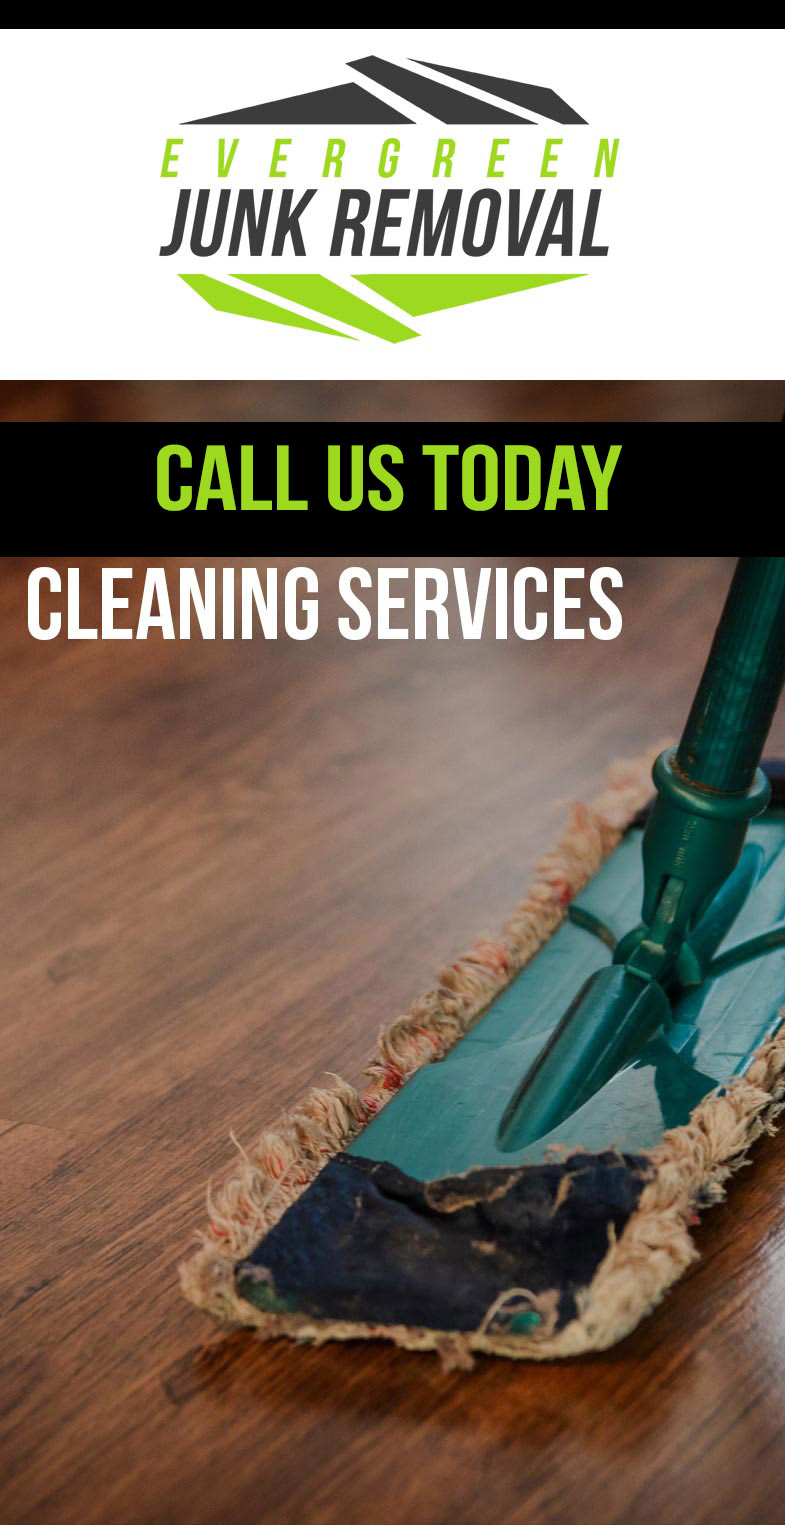 Wilton Manors Florida Maid Services